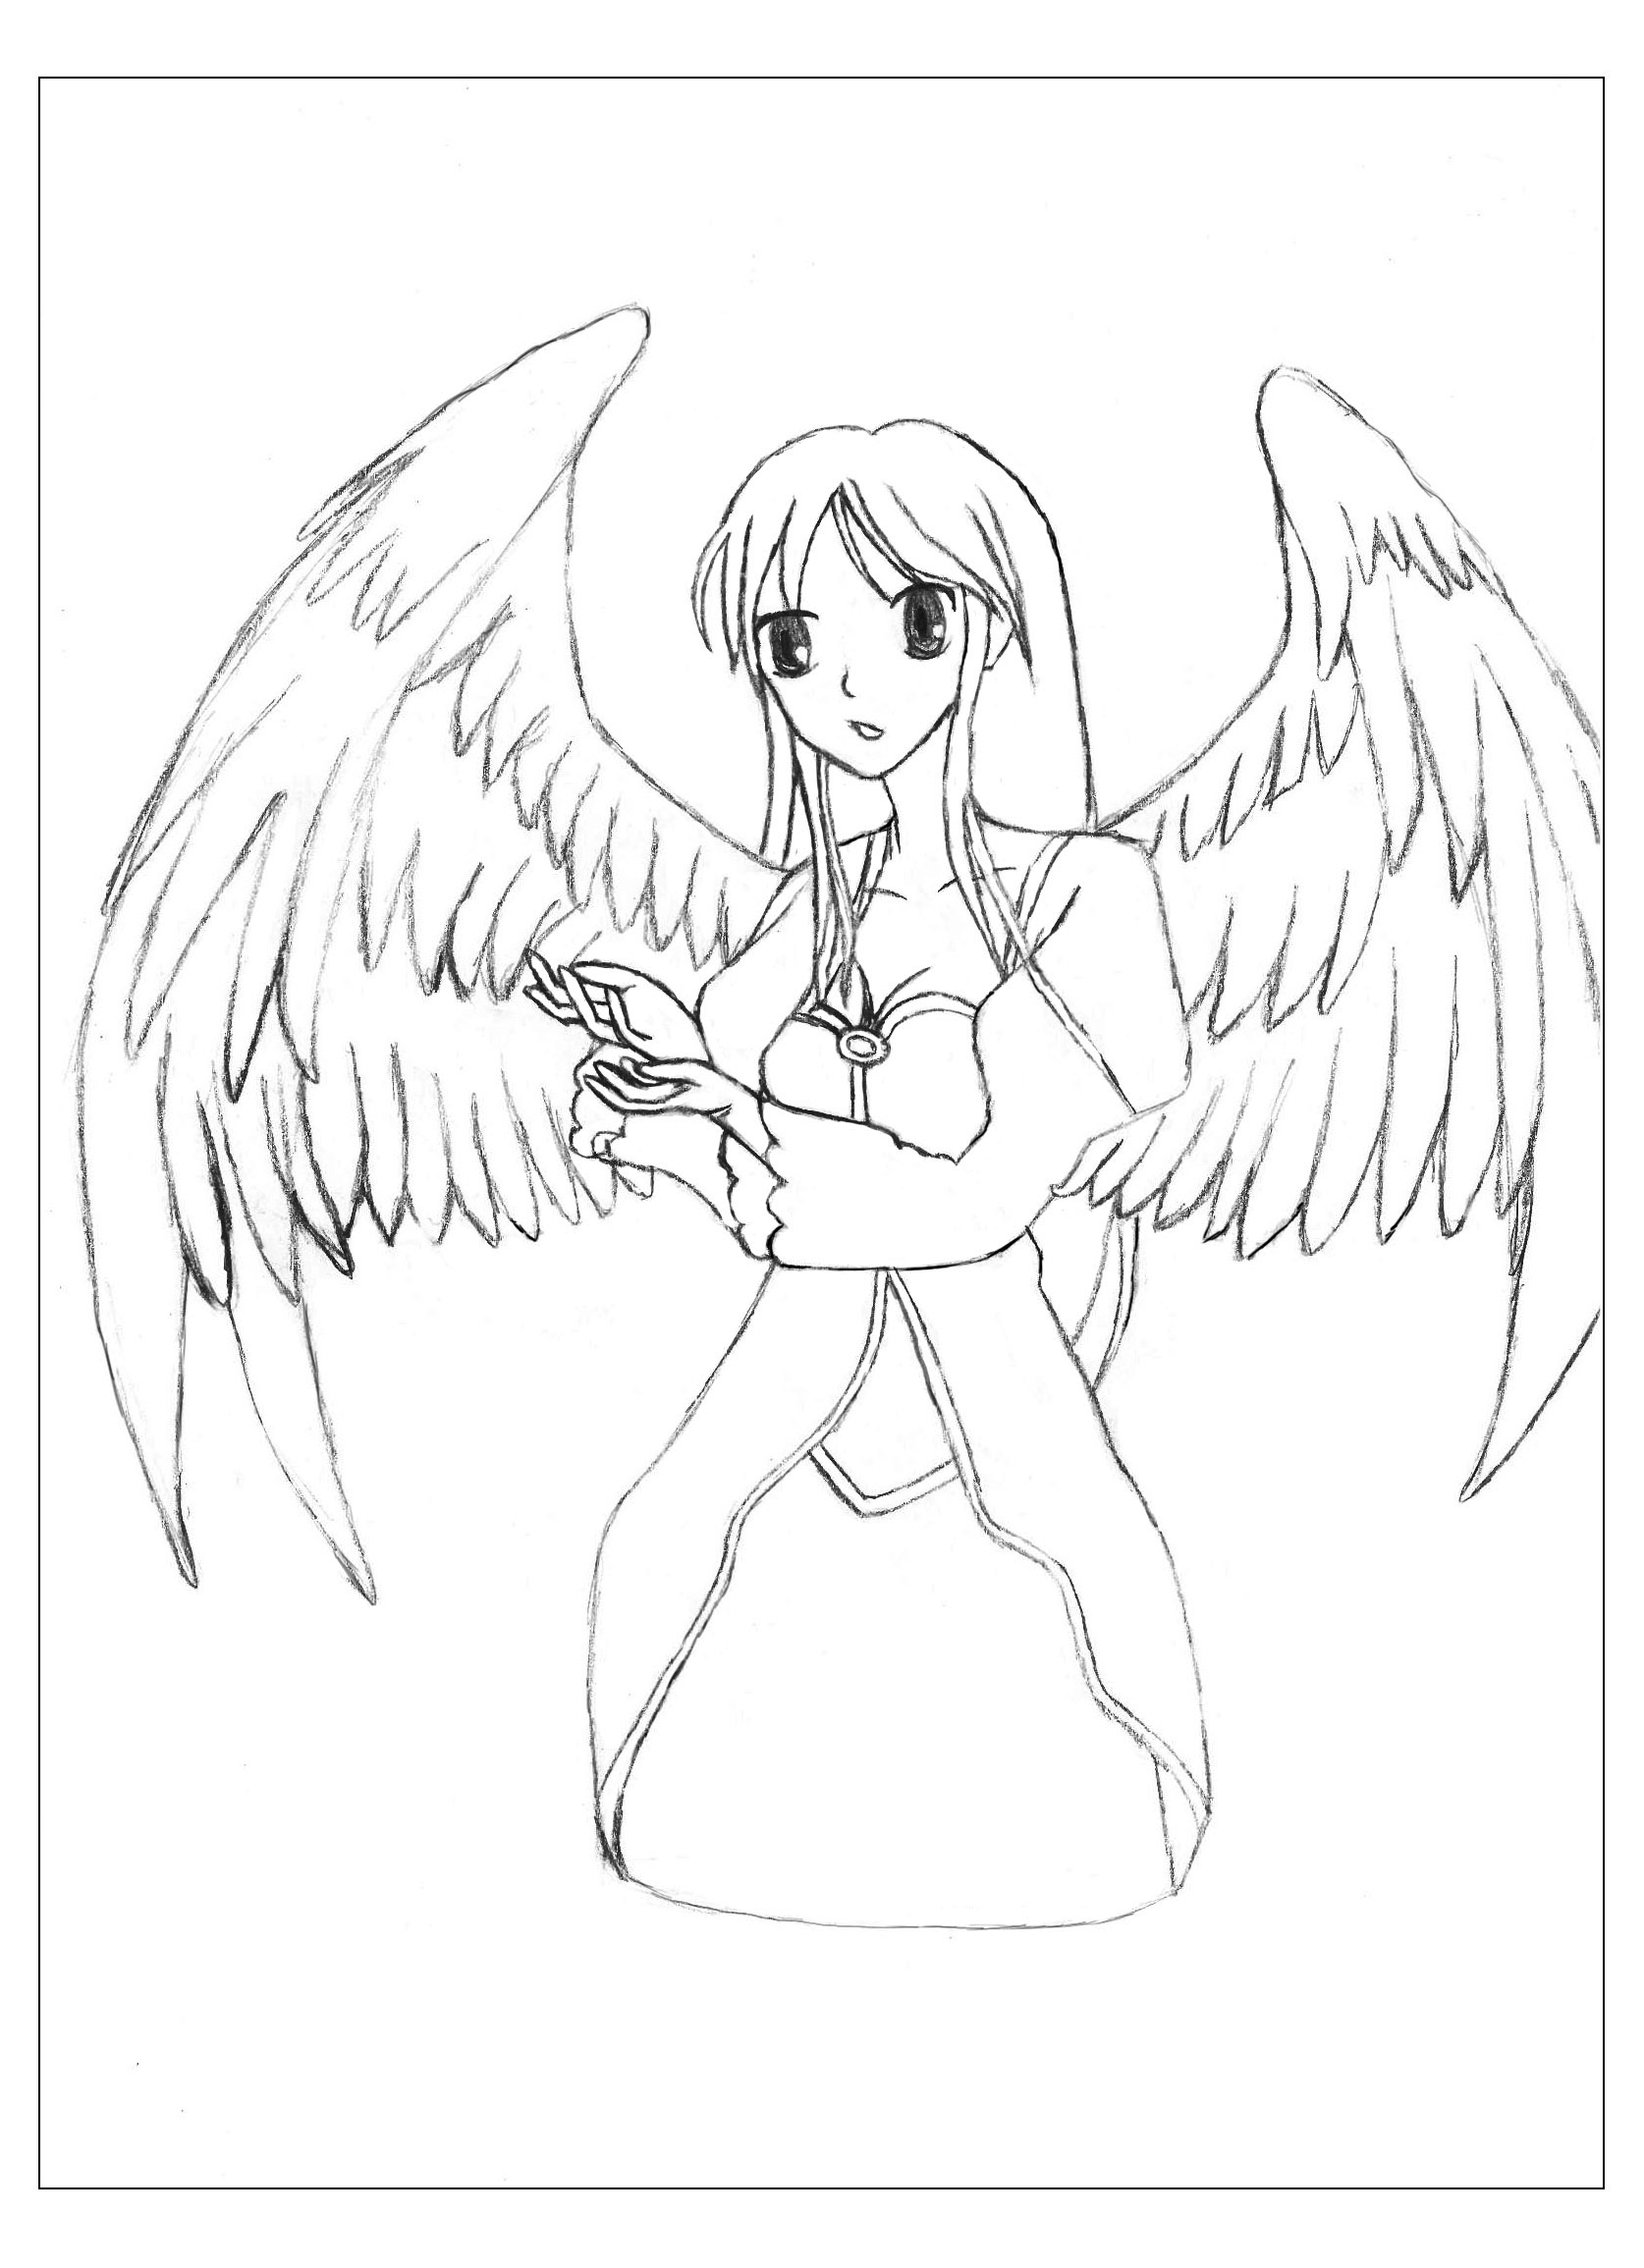 Coloring adult manga angel by krissy